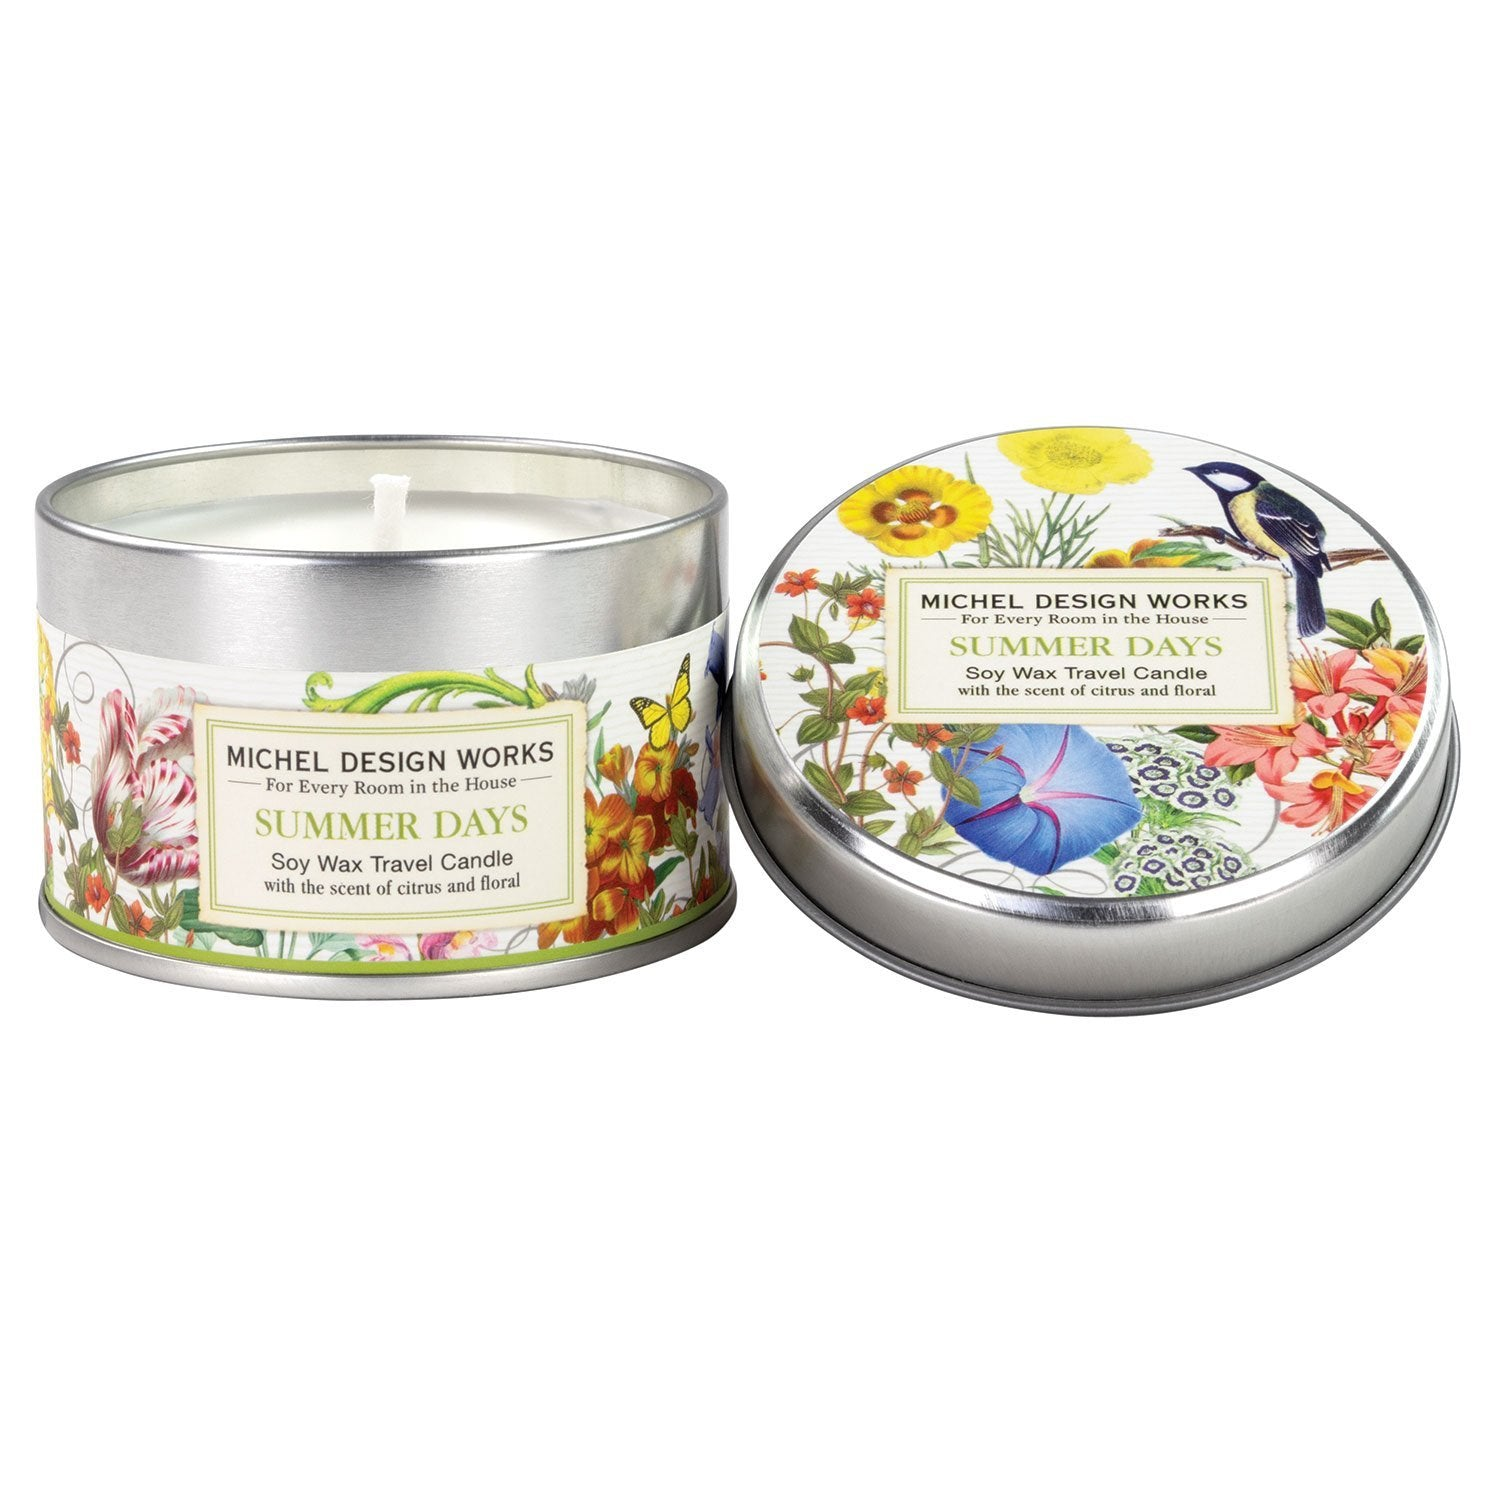 Summer Days - Soy Wax Travel Candle